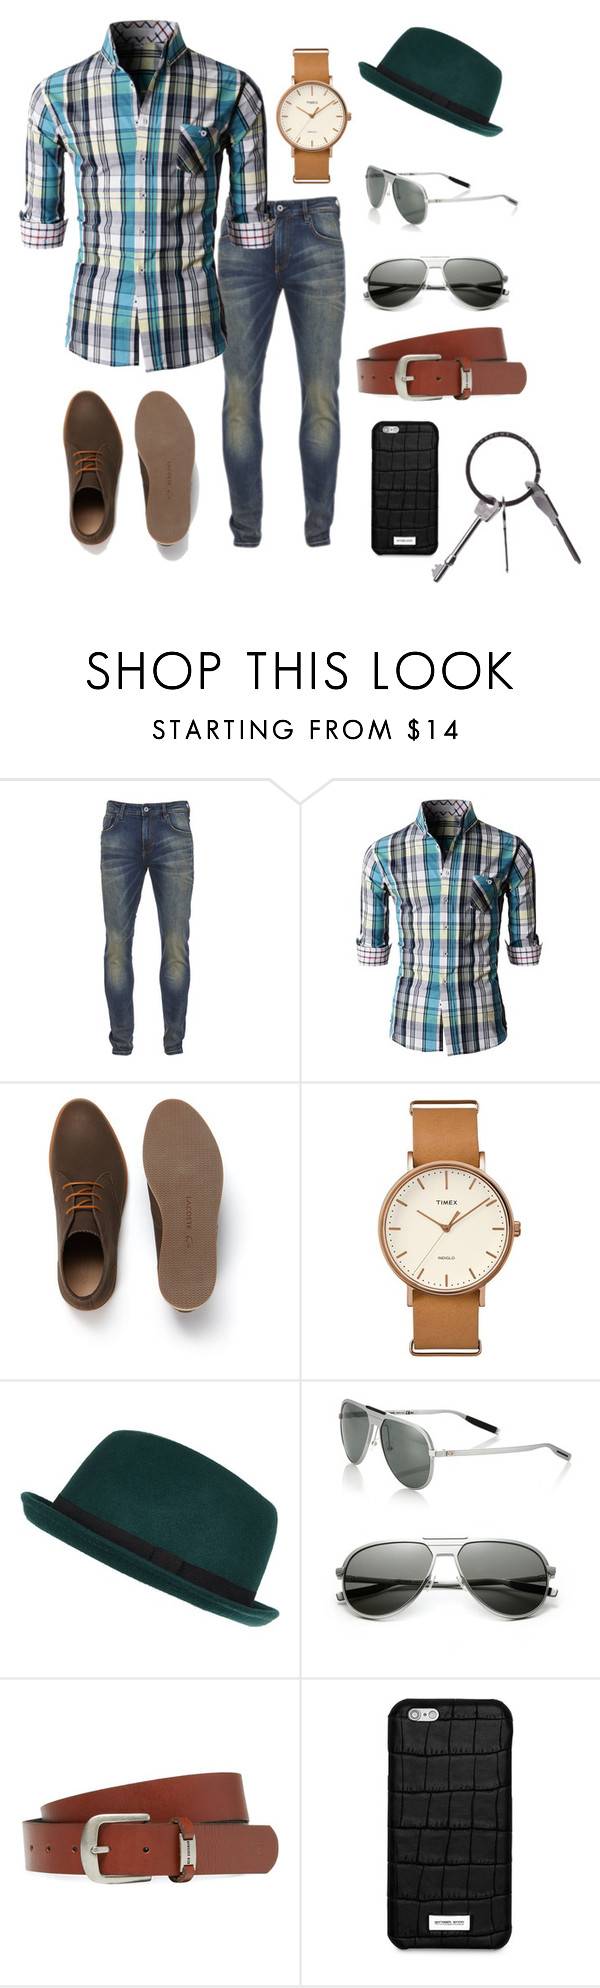 """""""Bring it on"""" by hsheril ❤ liked on Polyvore featuring Scotch & Soda, Lacoste, Timex, River Island, Dior Homme, Ben Sherman, Michael Kors, Givenchy, men's fashion and menswear"""